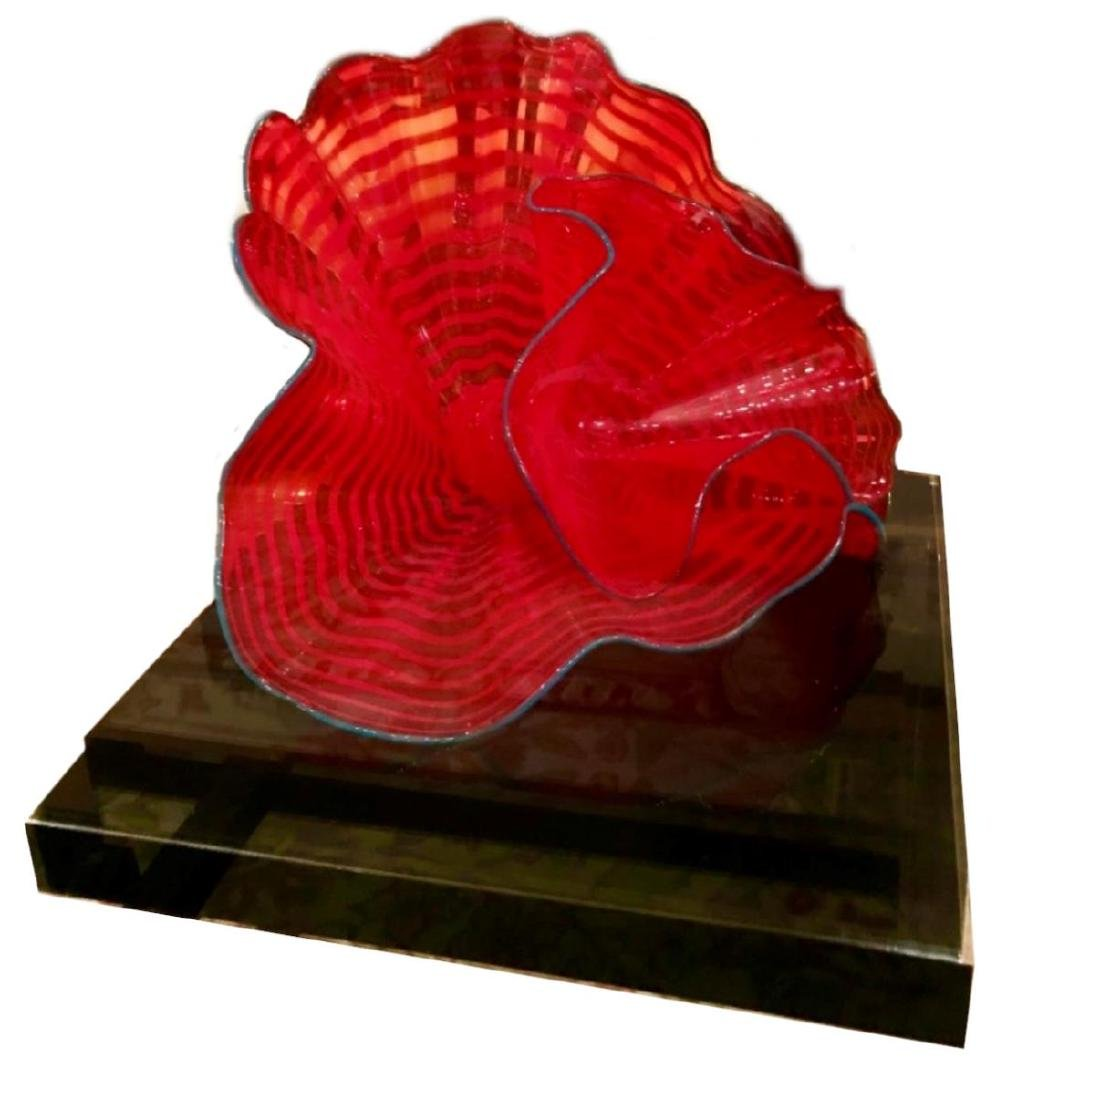 """DALE CHILHULY 2004 """"TANGO RED PERSIAN"""" SCULPTURE"""